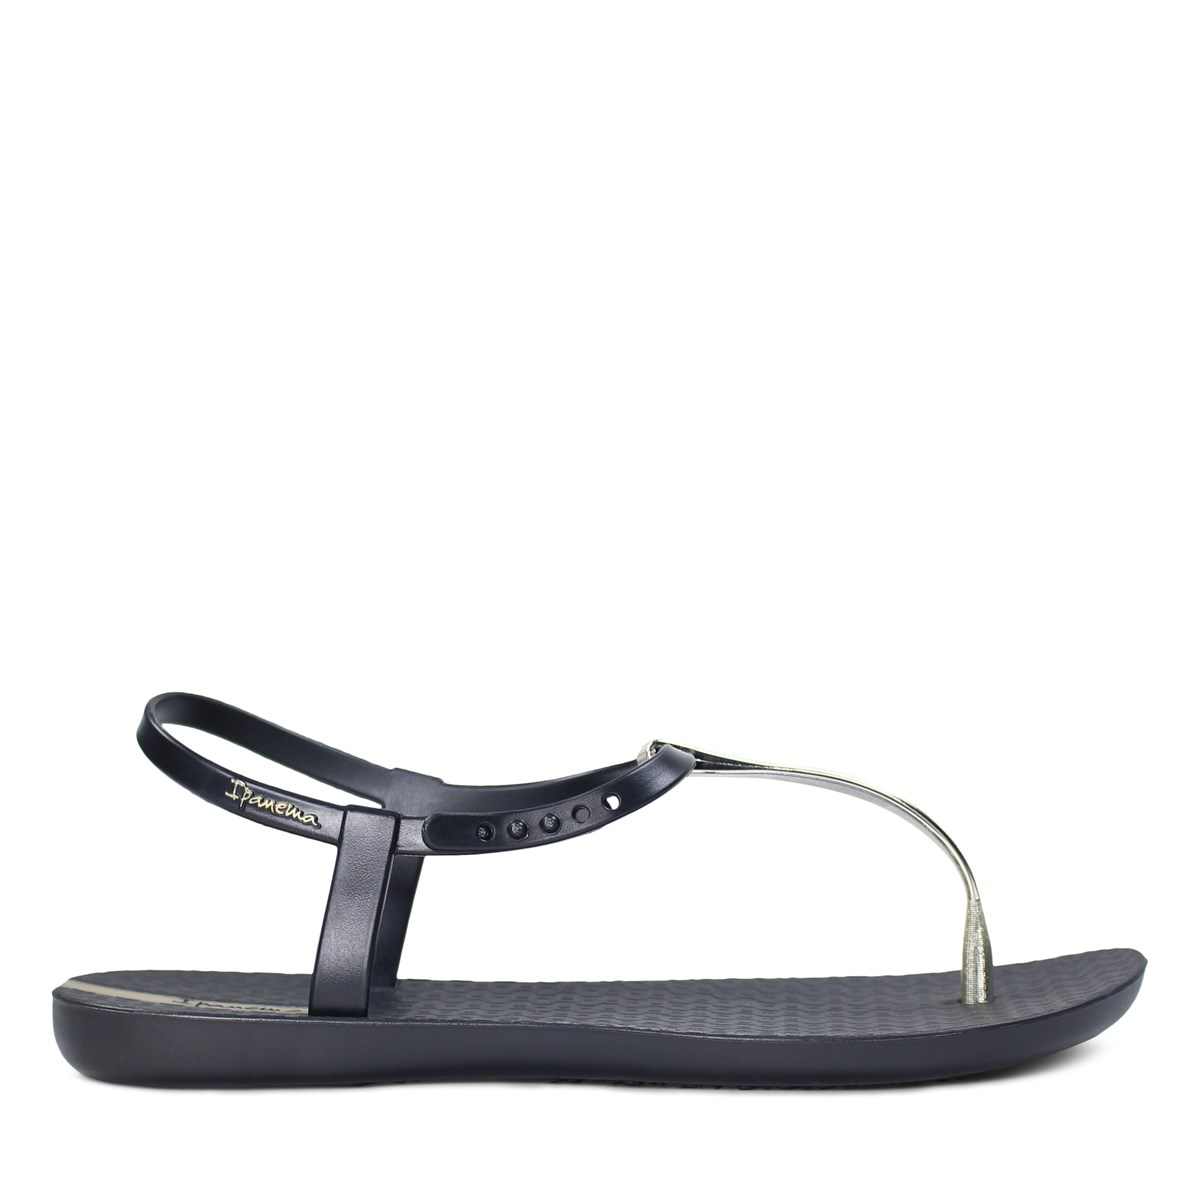 Women's Charm Sandal in Black